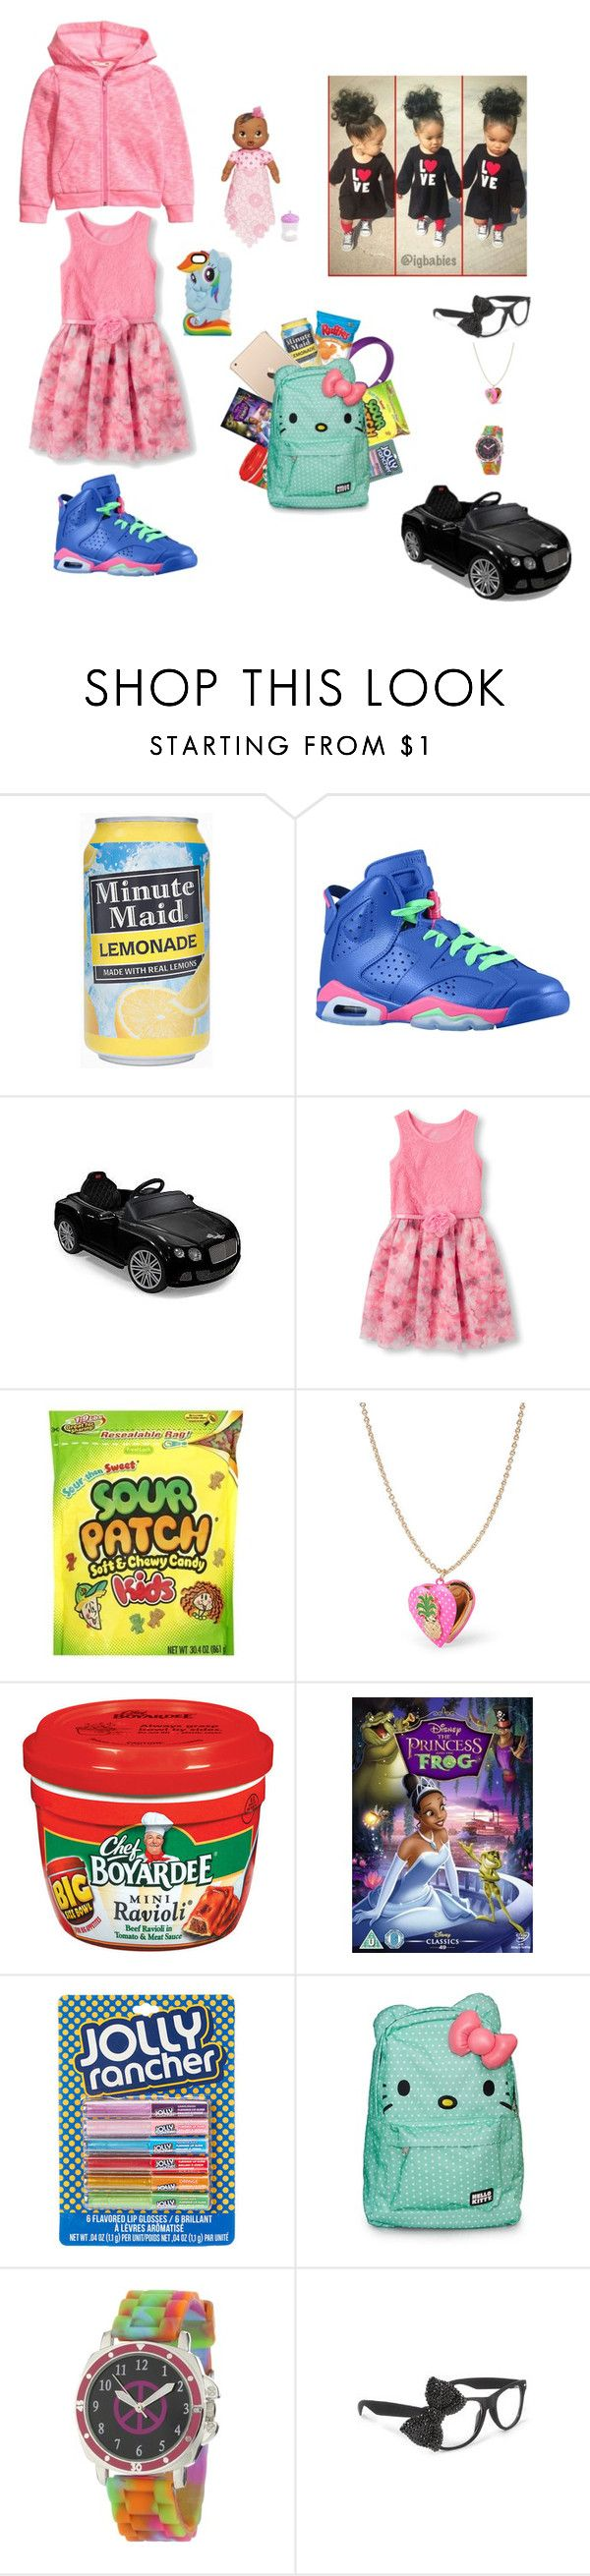 """Untitled #384"" by diamond-krys ❤ liked on Polyvore featuring H&M, Beats by Dr. Dre, Retrò, Hasbro, The Children's Place, Hello Kitty and My Little Pony"